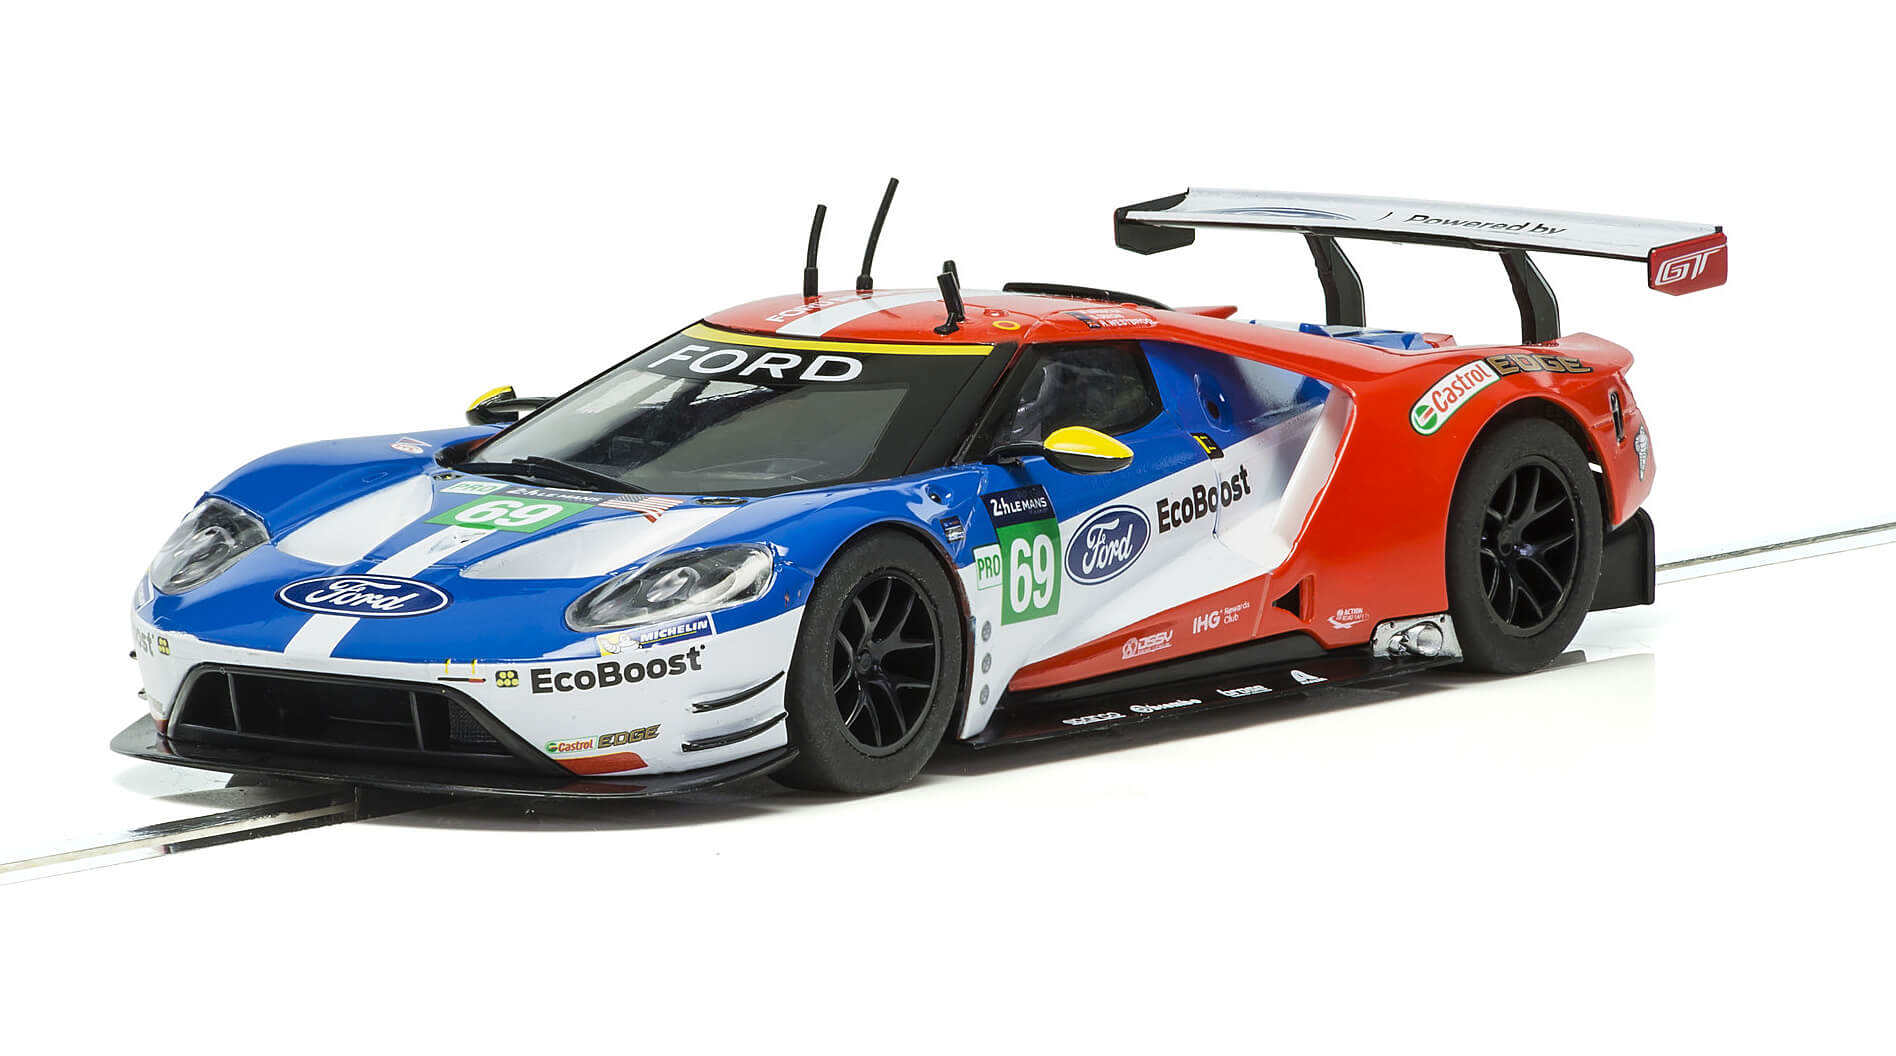 C3858 Scalextric Ford GT GTE Le Mans 2017, No.69